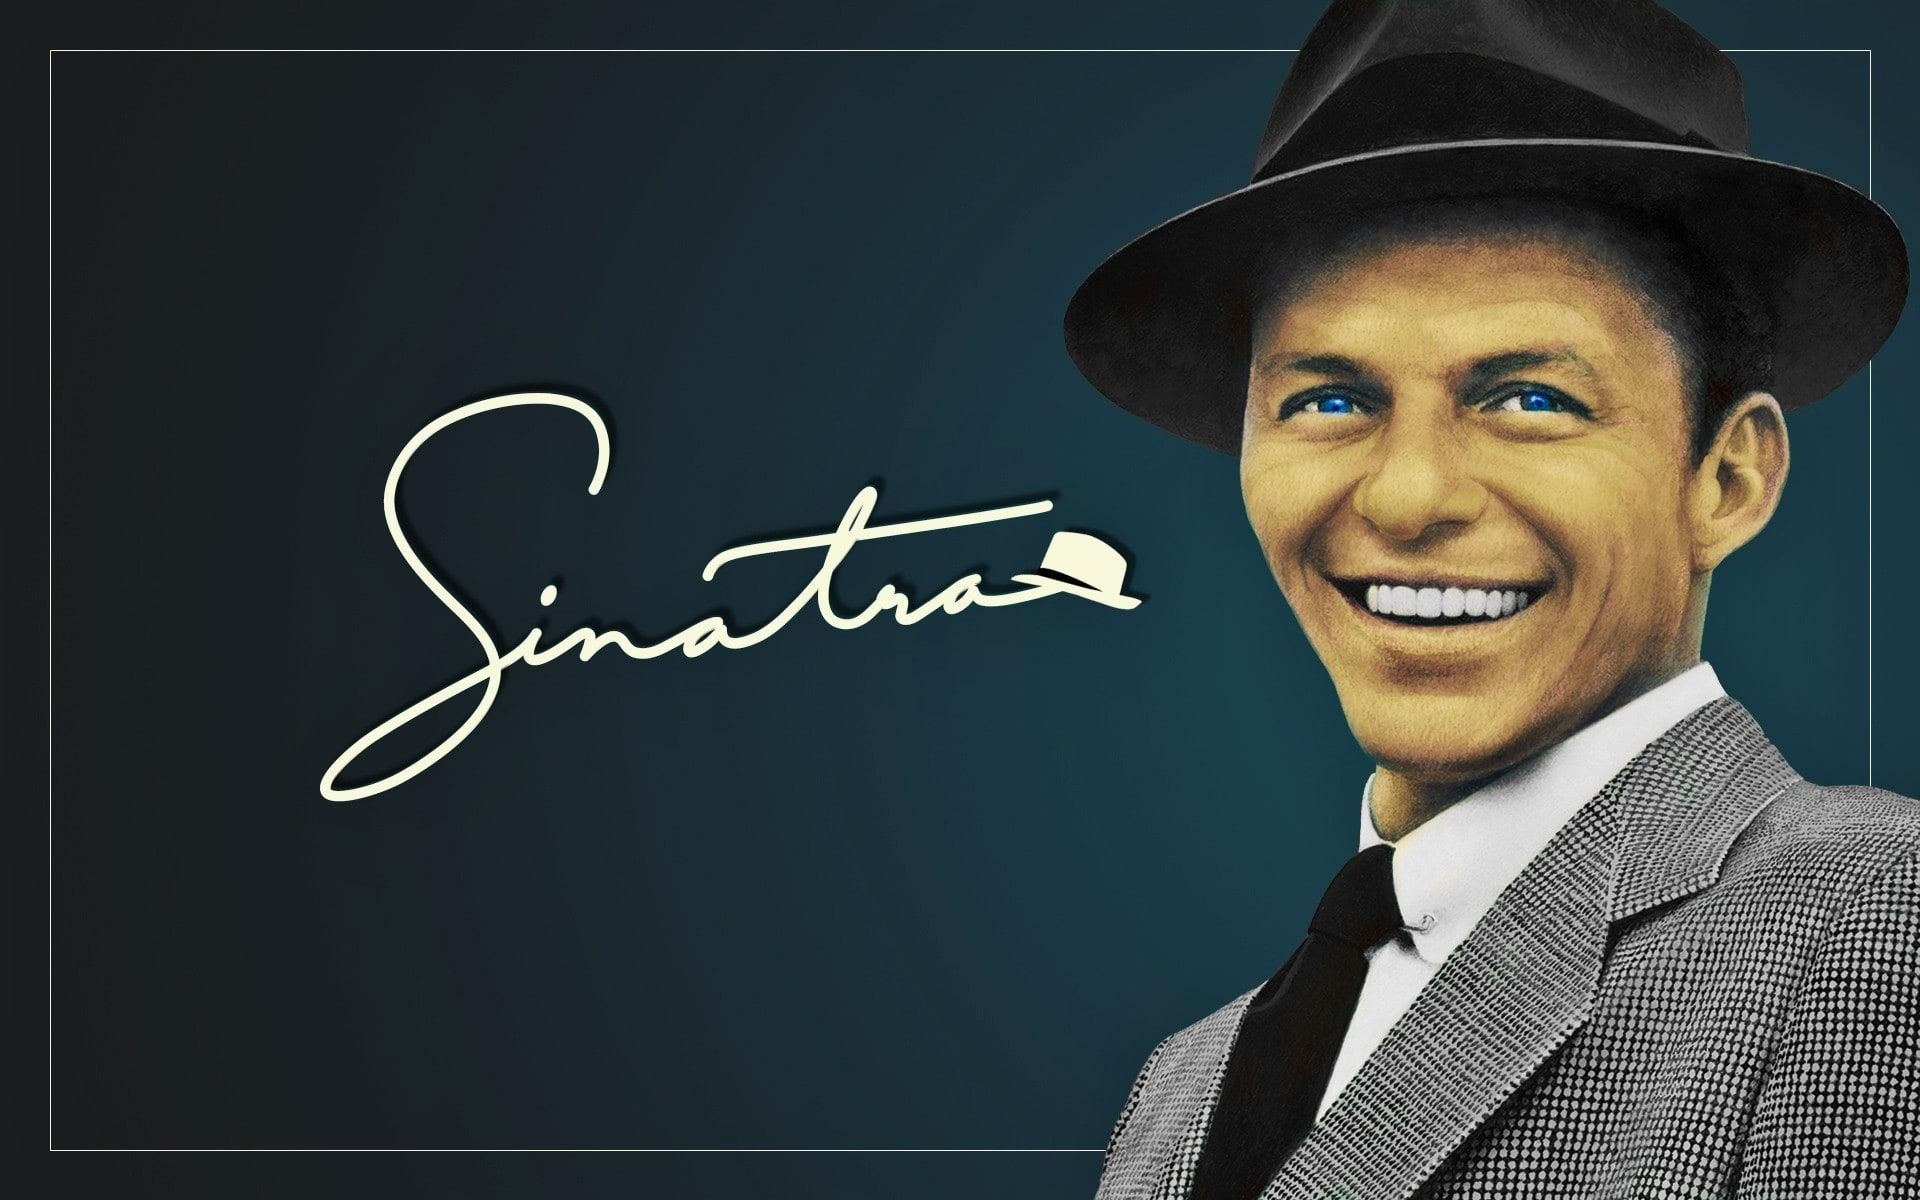 frank sinatra hd desktop wallpapers | 7wallpapers